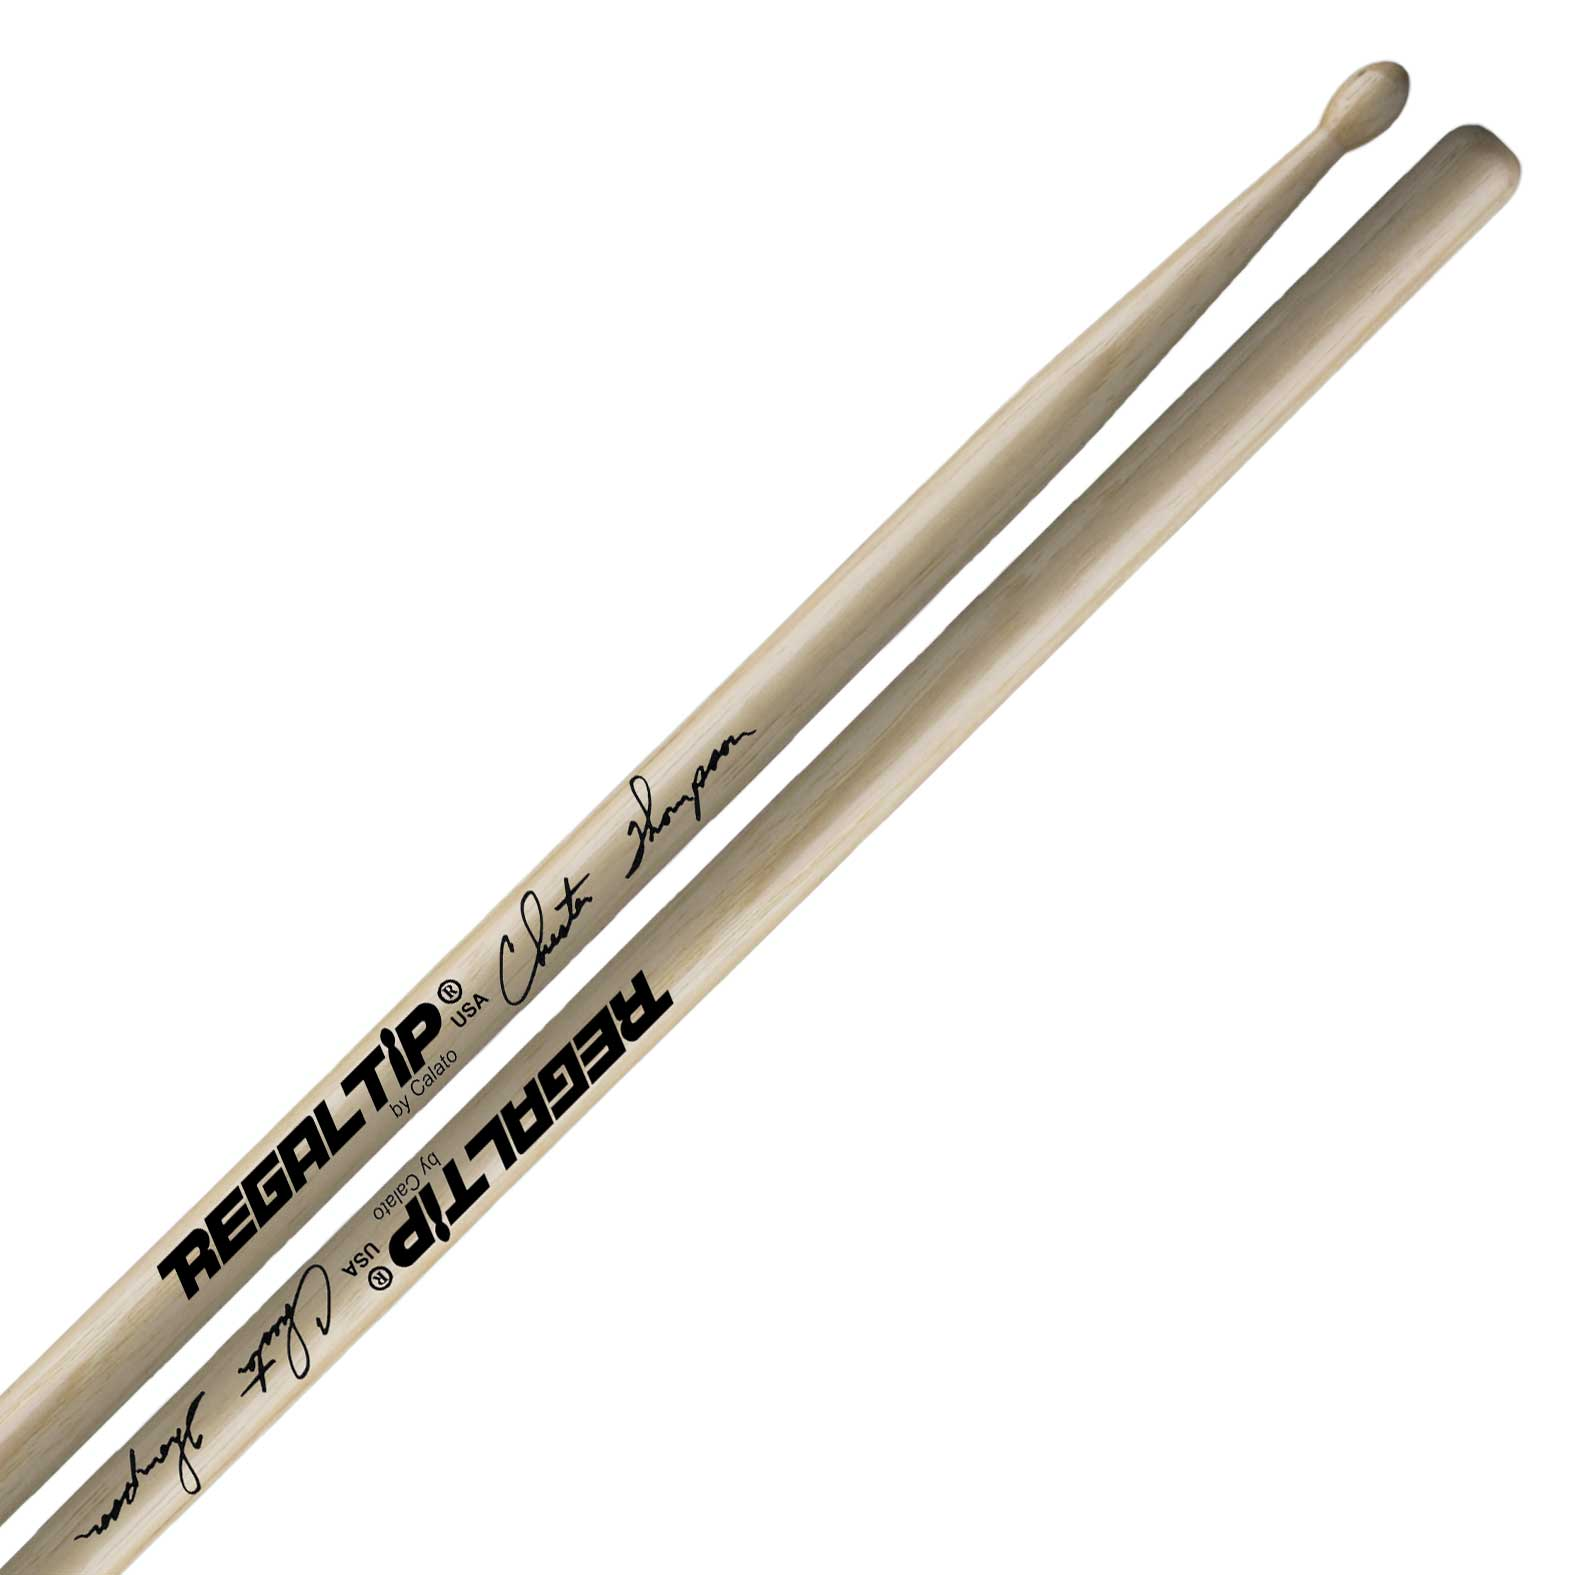 Regal Tip Performer Series Chester Thompson Wooden Tip Drumsticks